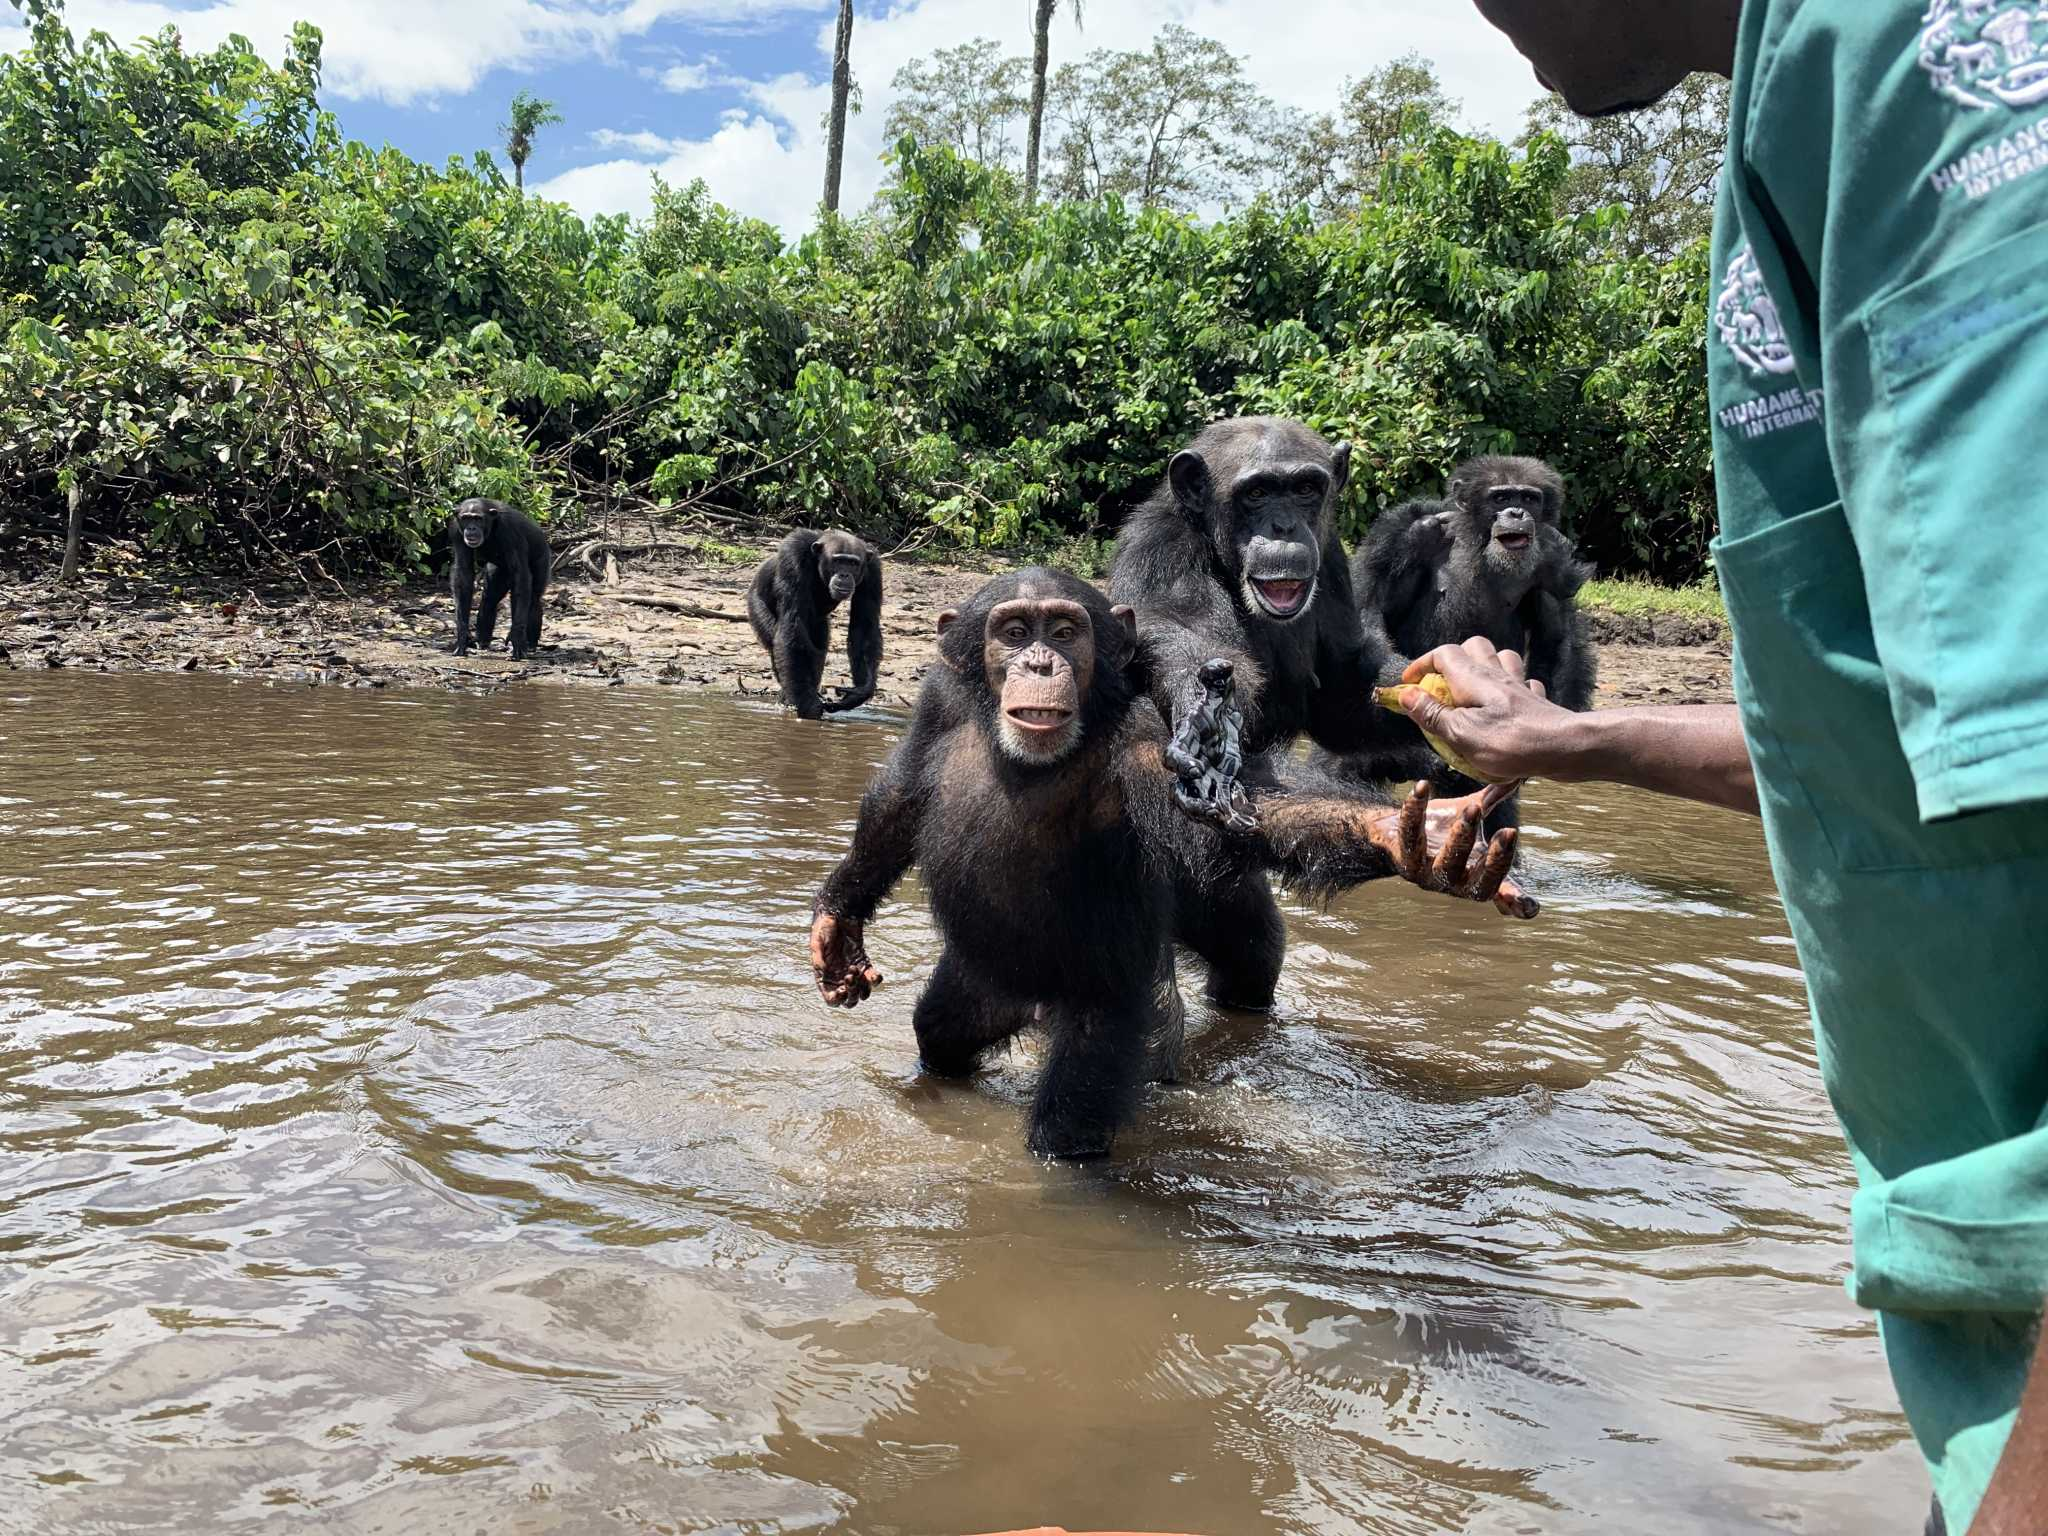 U.S. lab chimps were dumped on Liberia's Monkey Island and left to starve. Their caretaker saved them.